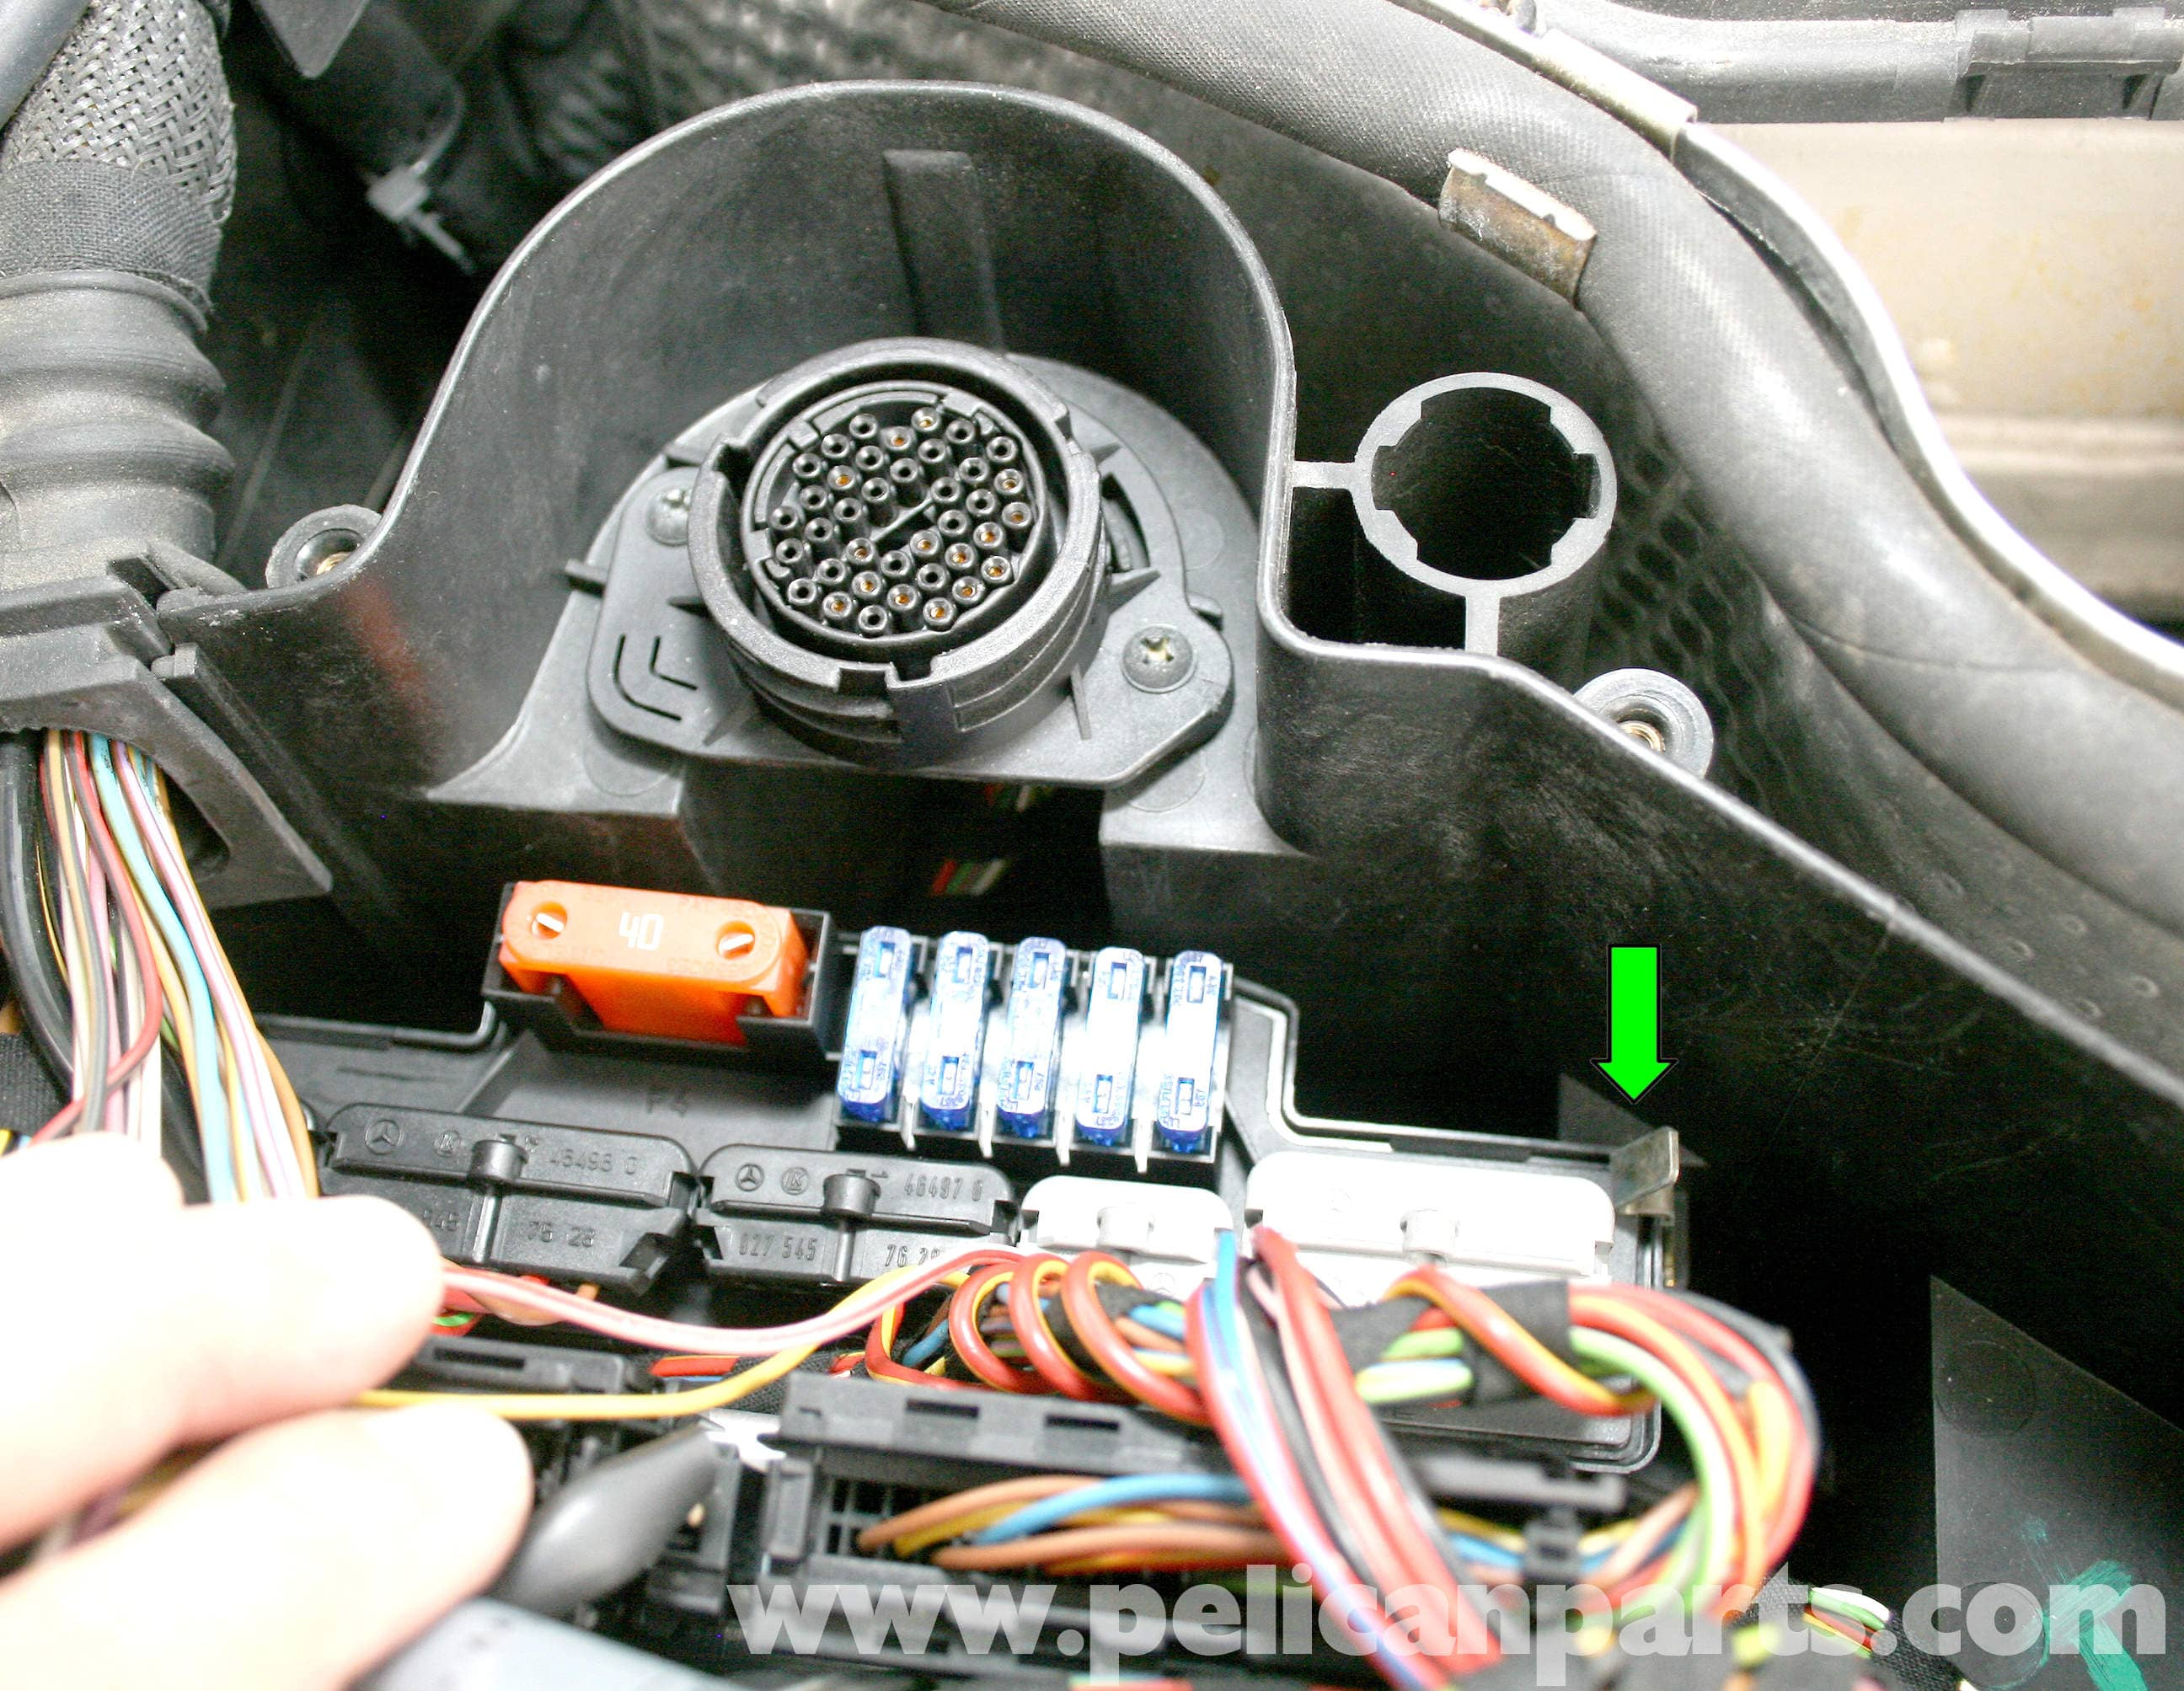 pic03 mercedes benz slk 230 k40 overload protection relay repair 1998  at eliteediting.co